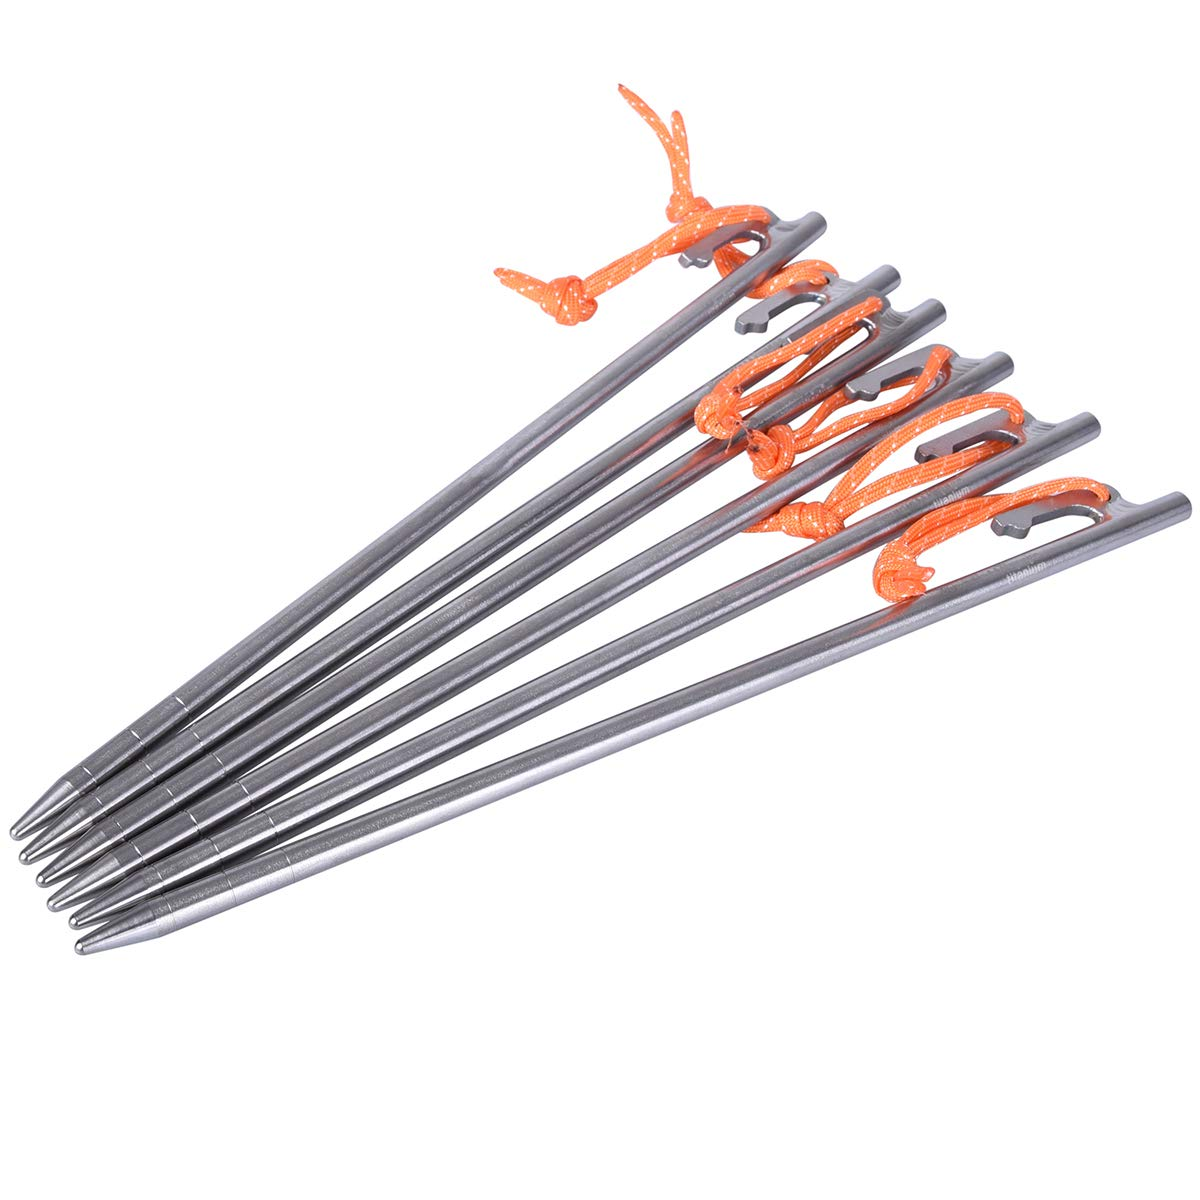 iBasingo 6 pcs Titanium Alloy Tent Pegs Outdoor Camping Awning Tent Stakes Lightweight Tent Nail (L 30cm) Ti1564I by iBasingo